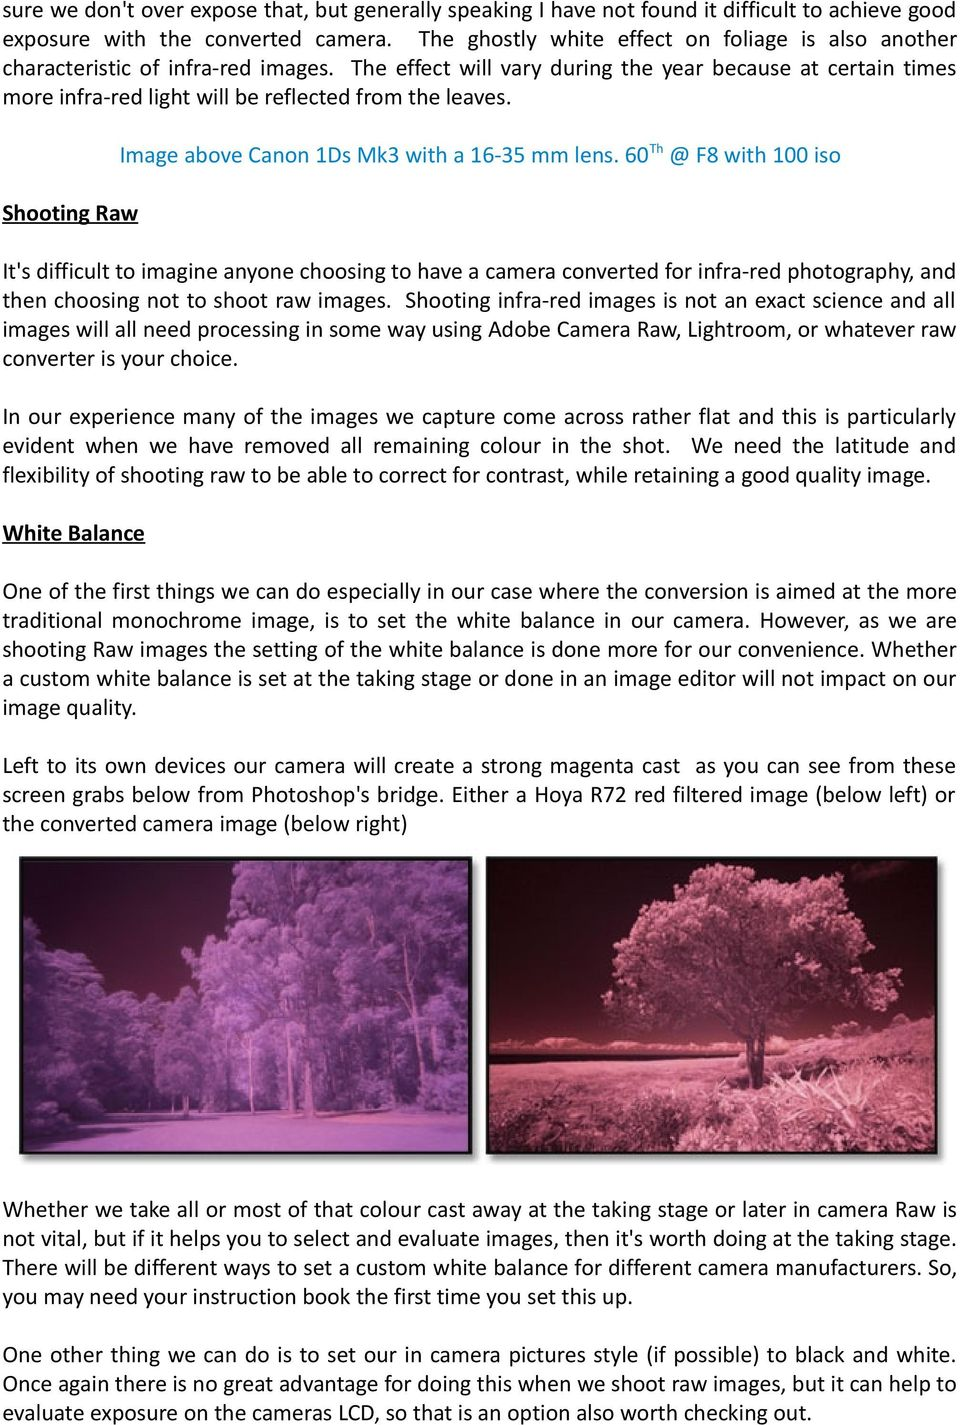 The effect will vary during the year because at certain times more infra-red light will be reflected from the leaves. Image above Canon 1Ds Mk3 with a 16-35 mm lens.